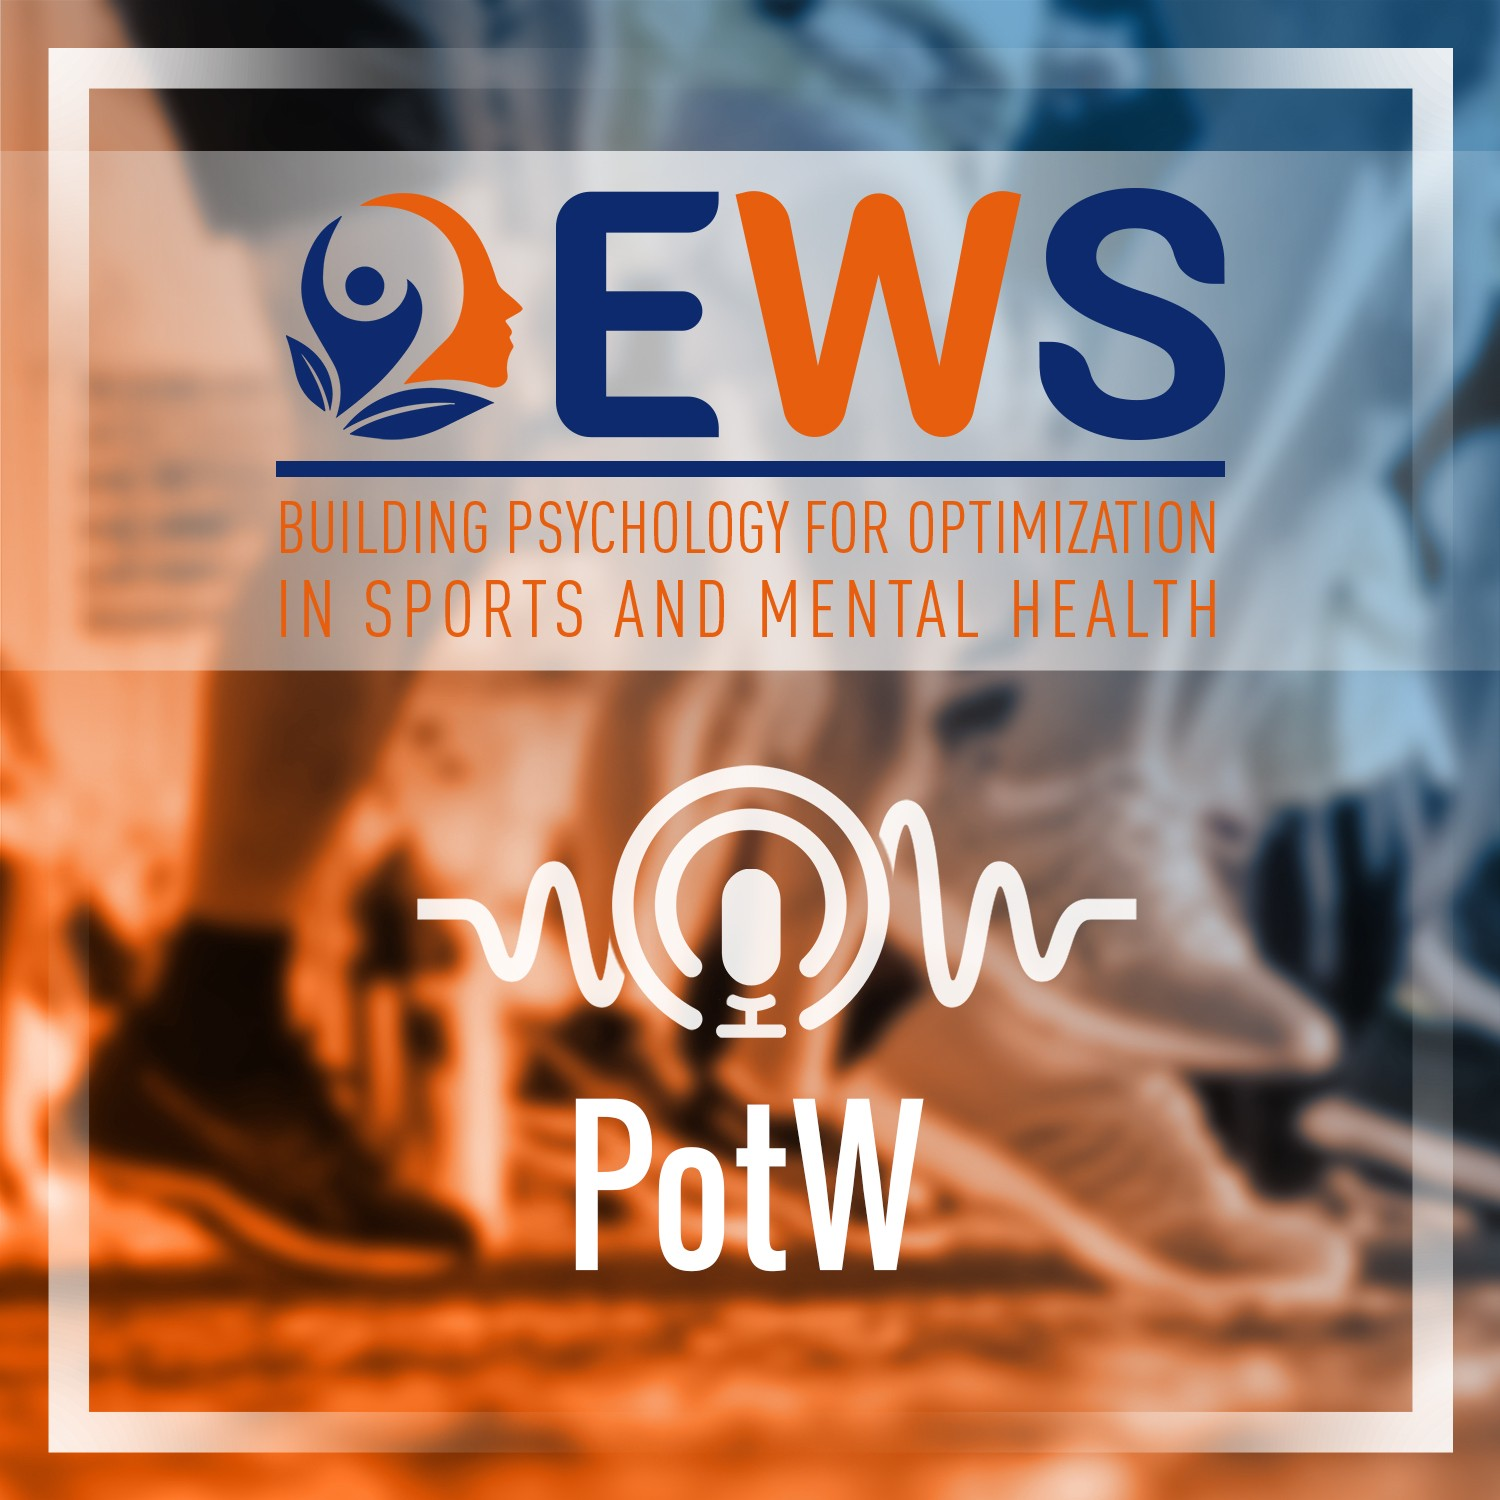 58. In Honor of Fair Play - Essential Element to E-W-S, PotW #12